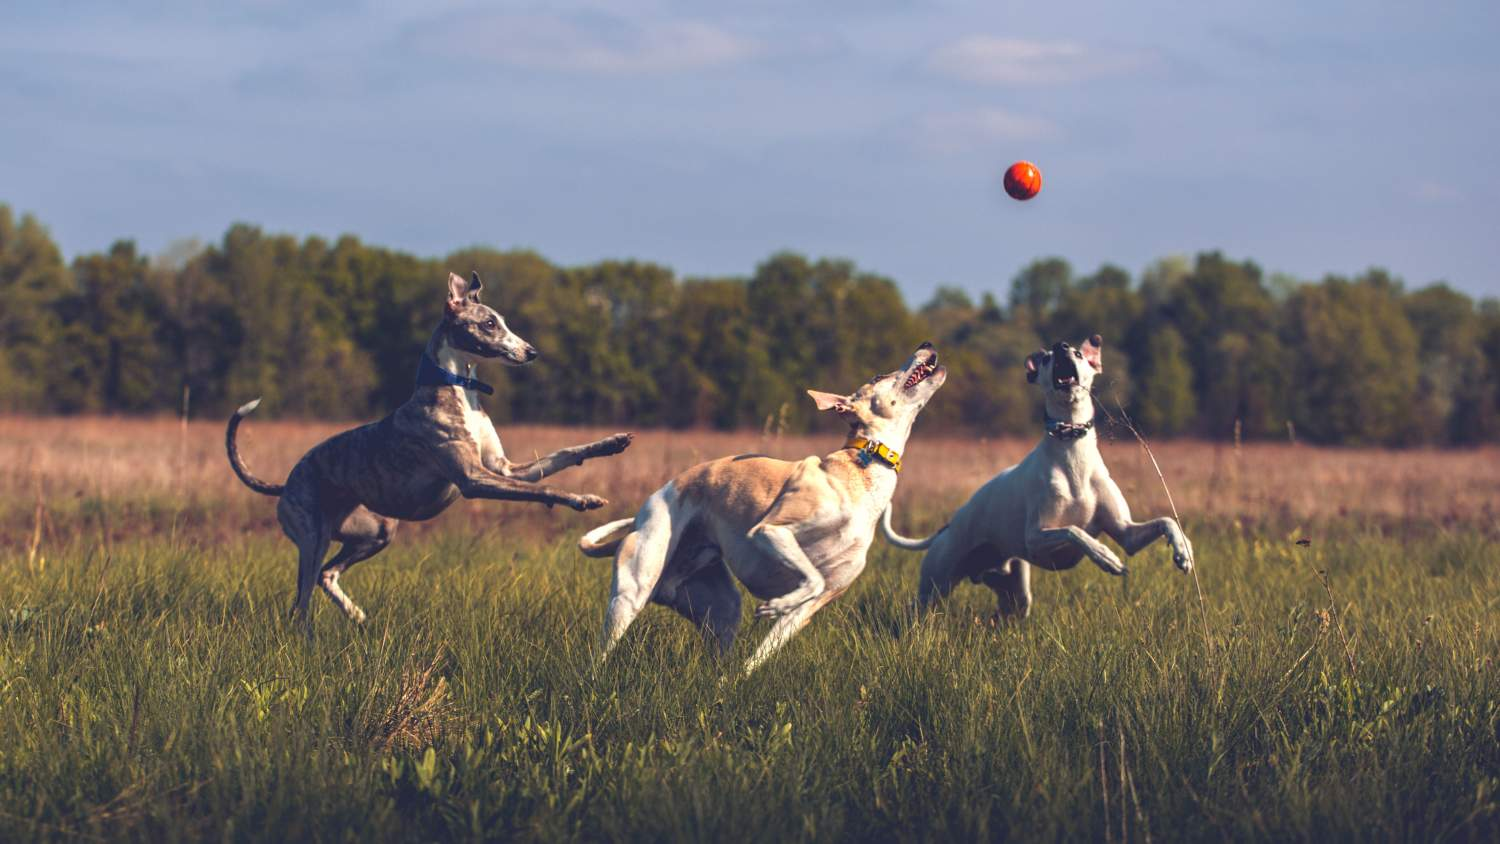 Whippets playing with a ball